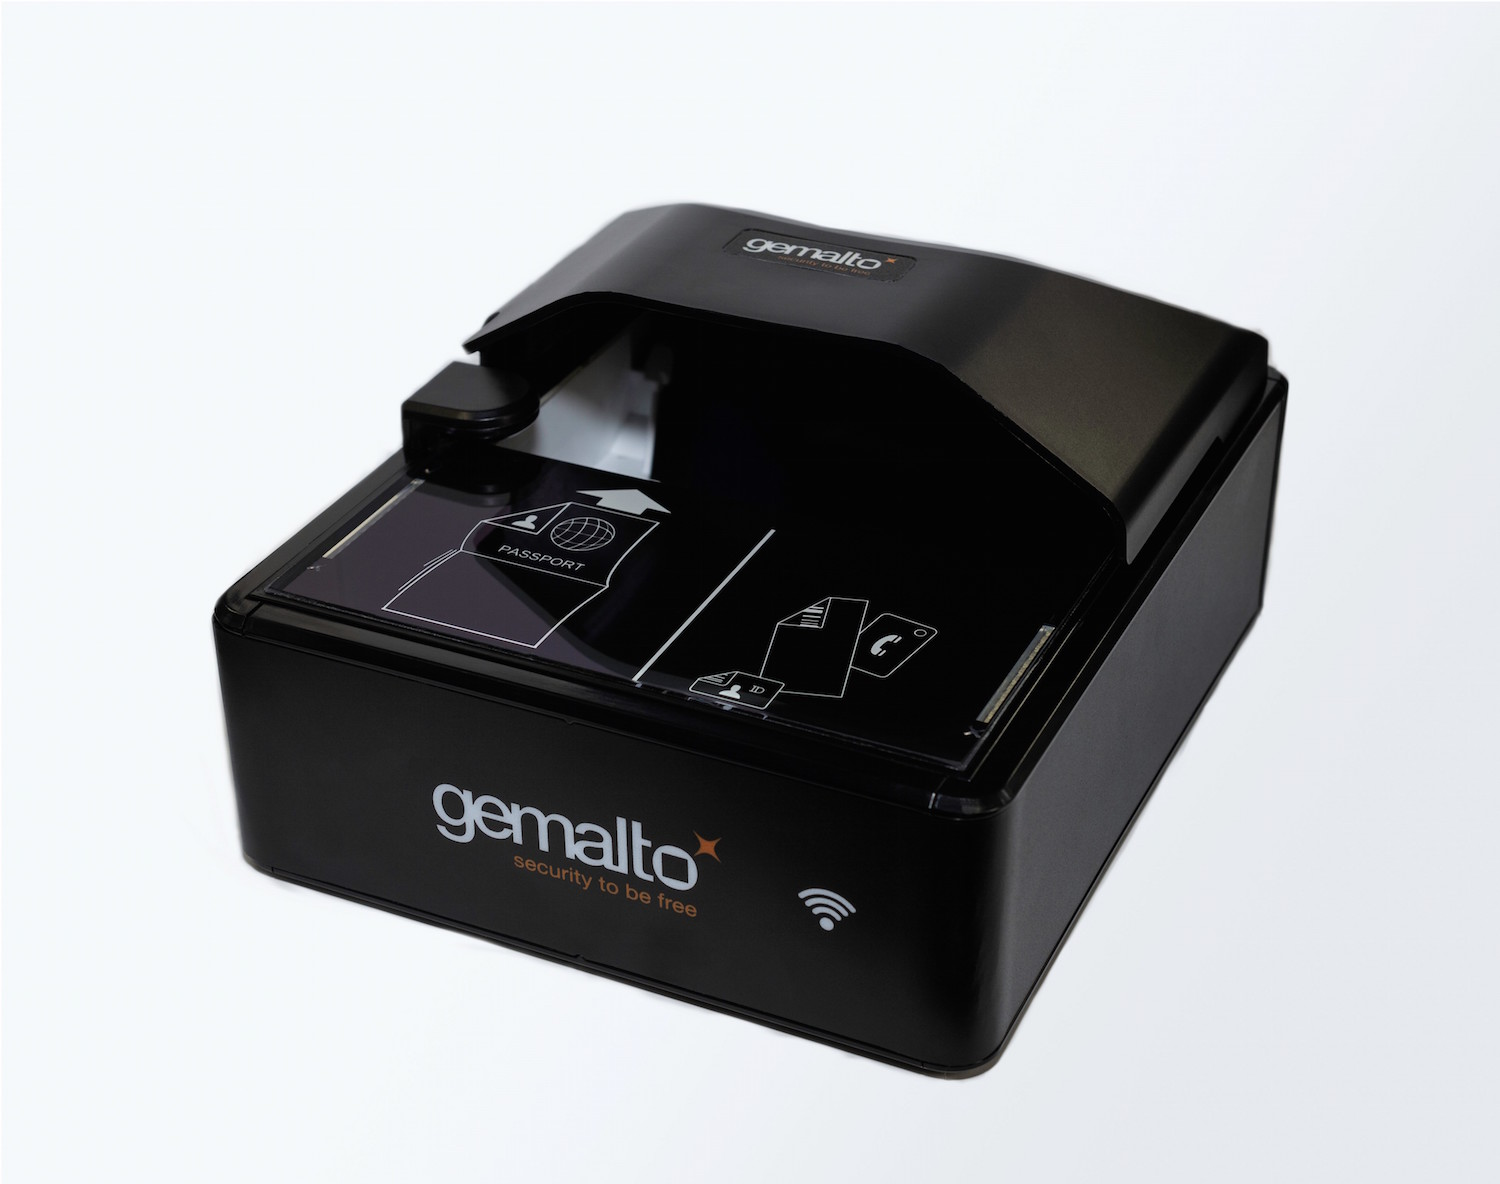 Gemalto delivers industry first cloud-ready document reader